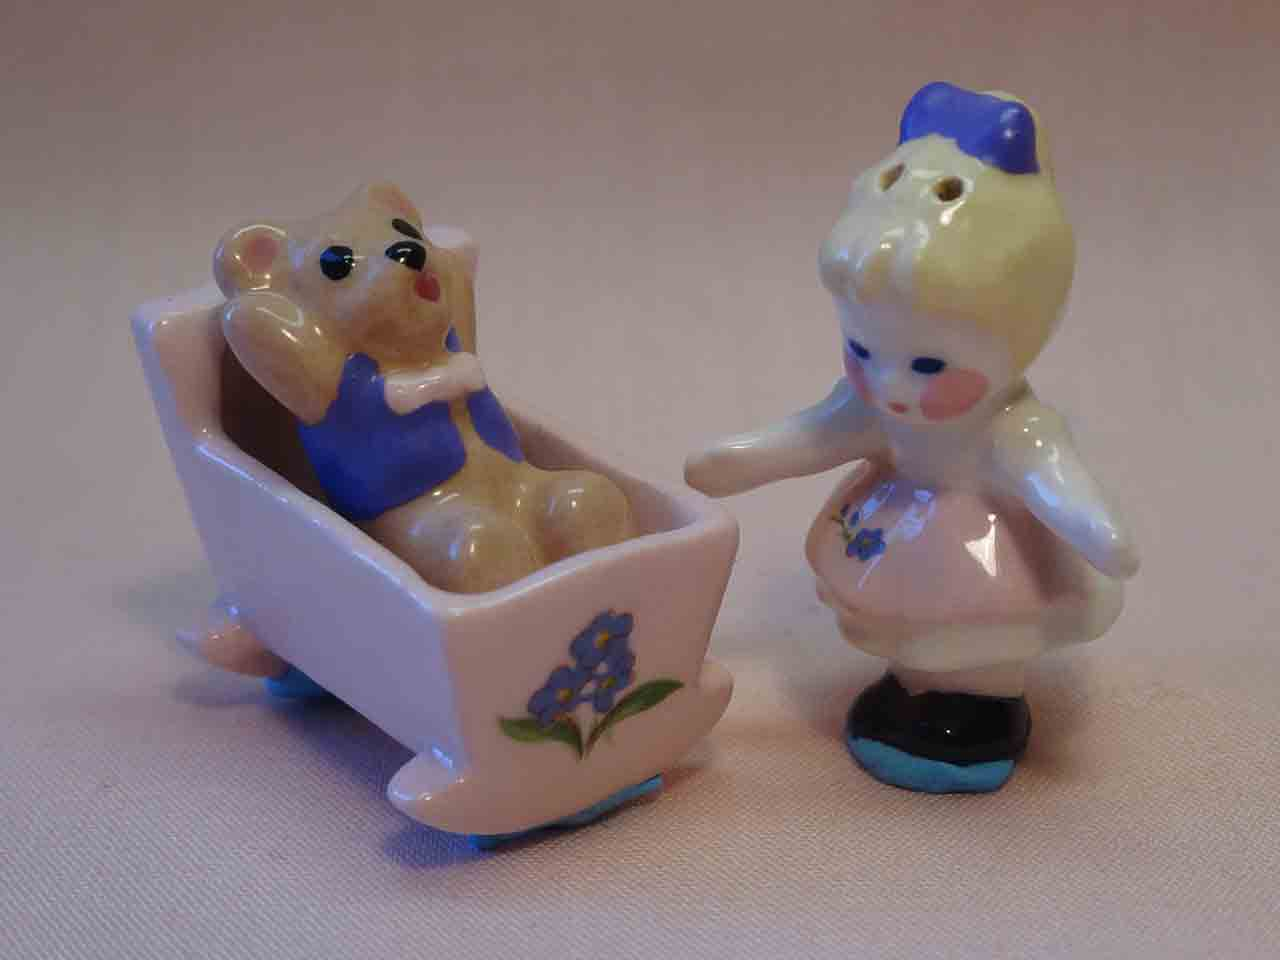 Miniature girl with teddy bear in cradle salt and pepper shaker by Sandy Srp